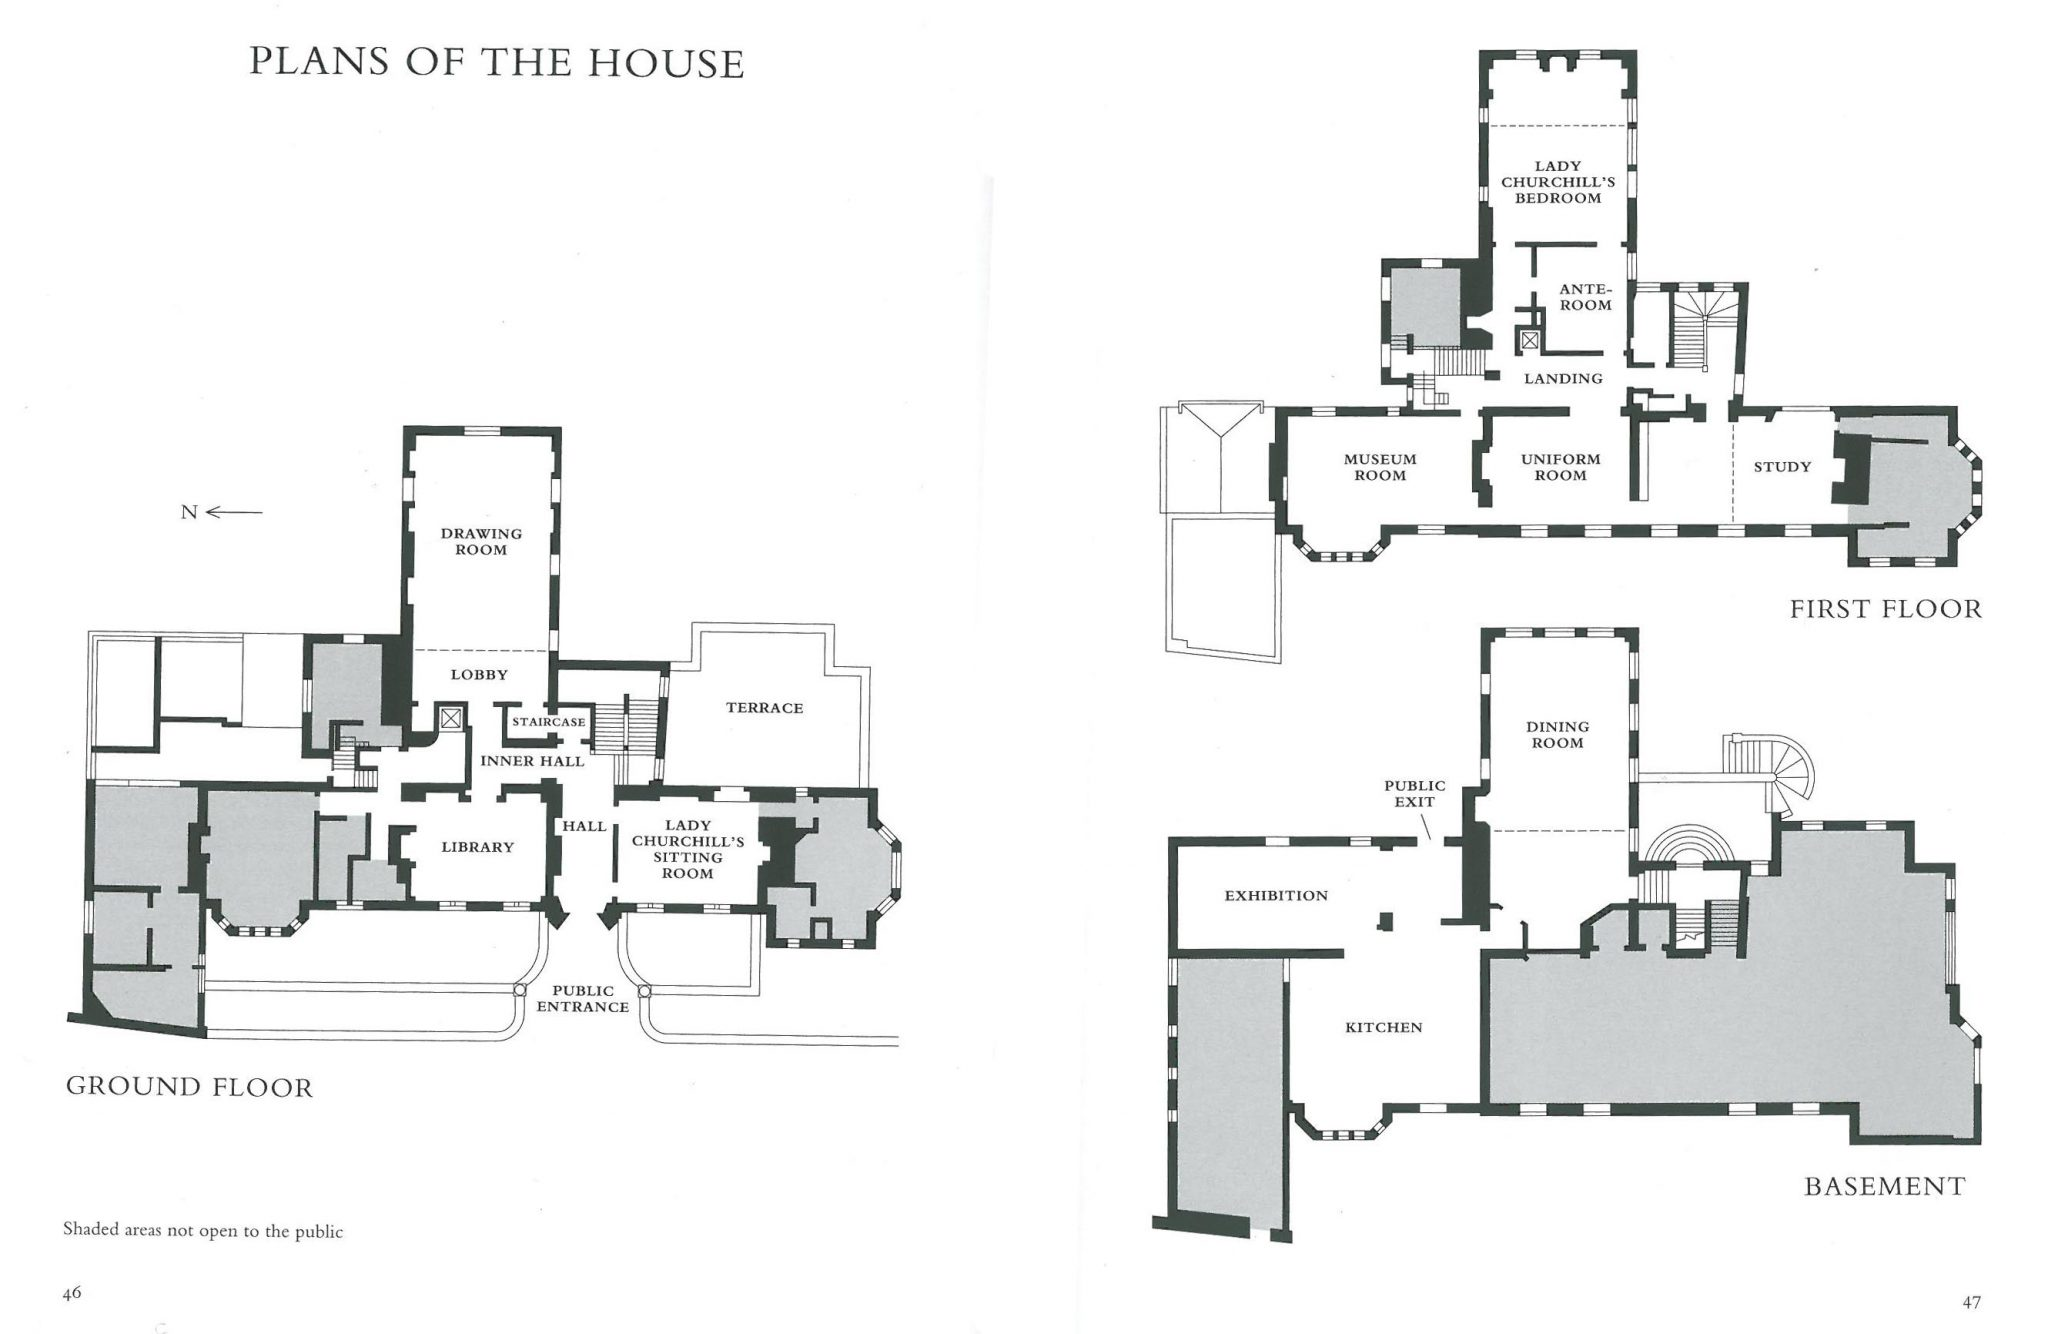 Chartwell: Plans of the House. Visitors are not allowed to take photos of the interiors, which are decorated in a comfy and low-keyed manner. After Winston's death in 1965, Clementine gave the House to The National Trust, with the furnishings of its principal rooms virtually intact. She also bequeathed a collection of about 60 of Winston's own paintings to the Trust. Image courtesy of The National Trust.